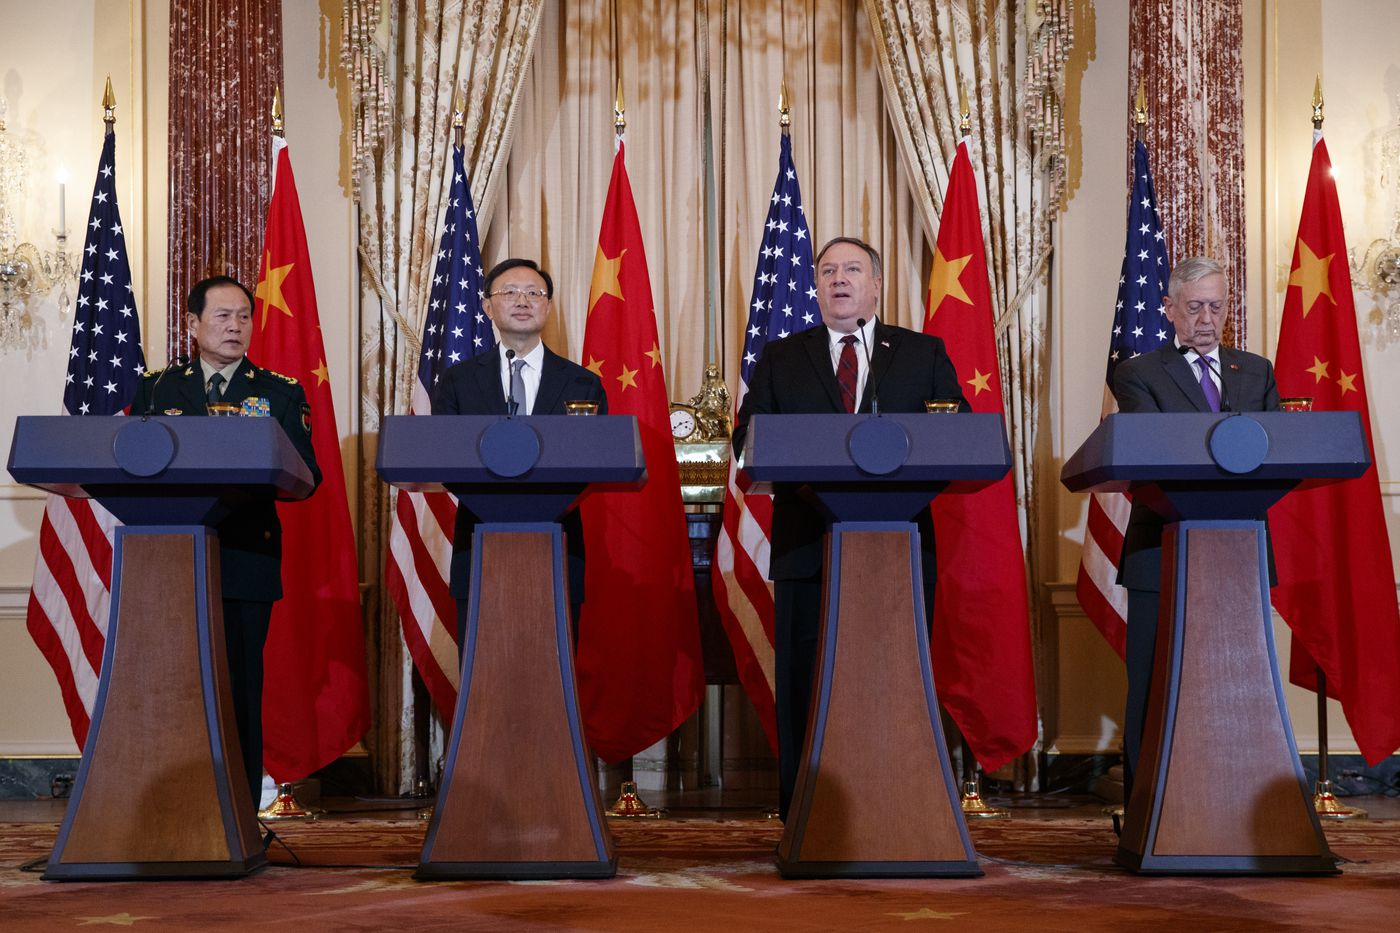 From left, Chinese State Councilor and Defense Minister General Wei Fenghe, Chinese Politburo Member Yang Jiechi, Secretary of State Mike Pompeo, and Secretary of Defense Jim Mattis, participate in a news conference at the State Department in Washington, Friday, Nov. 9, 2018. (AP Photo/Carolyn Kaster)